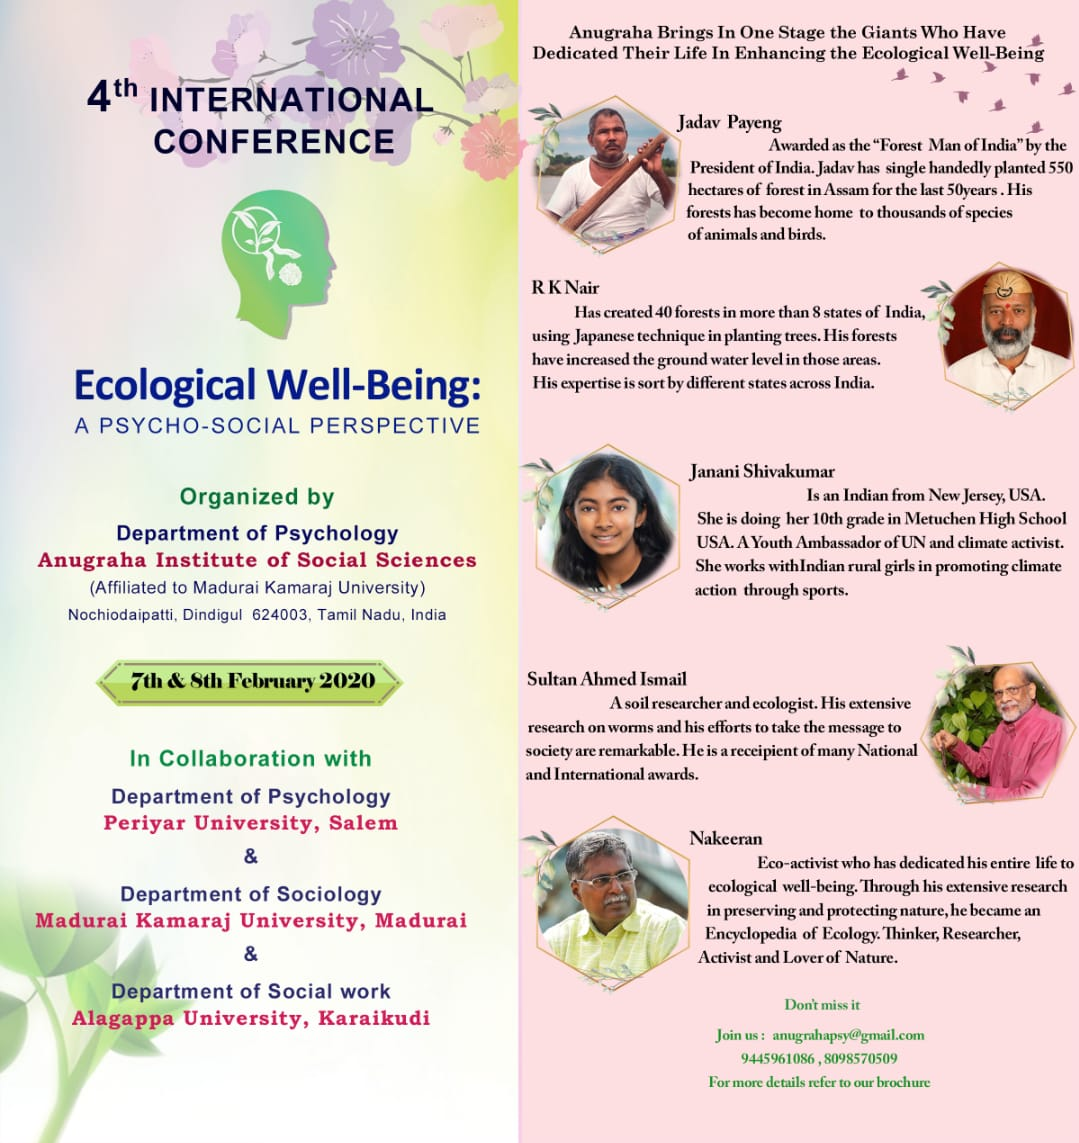 4th-international-conference-on-the-ecological-well-being-janani-shivakumar-girls-play-global-speaks-on-interconnectedness